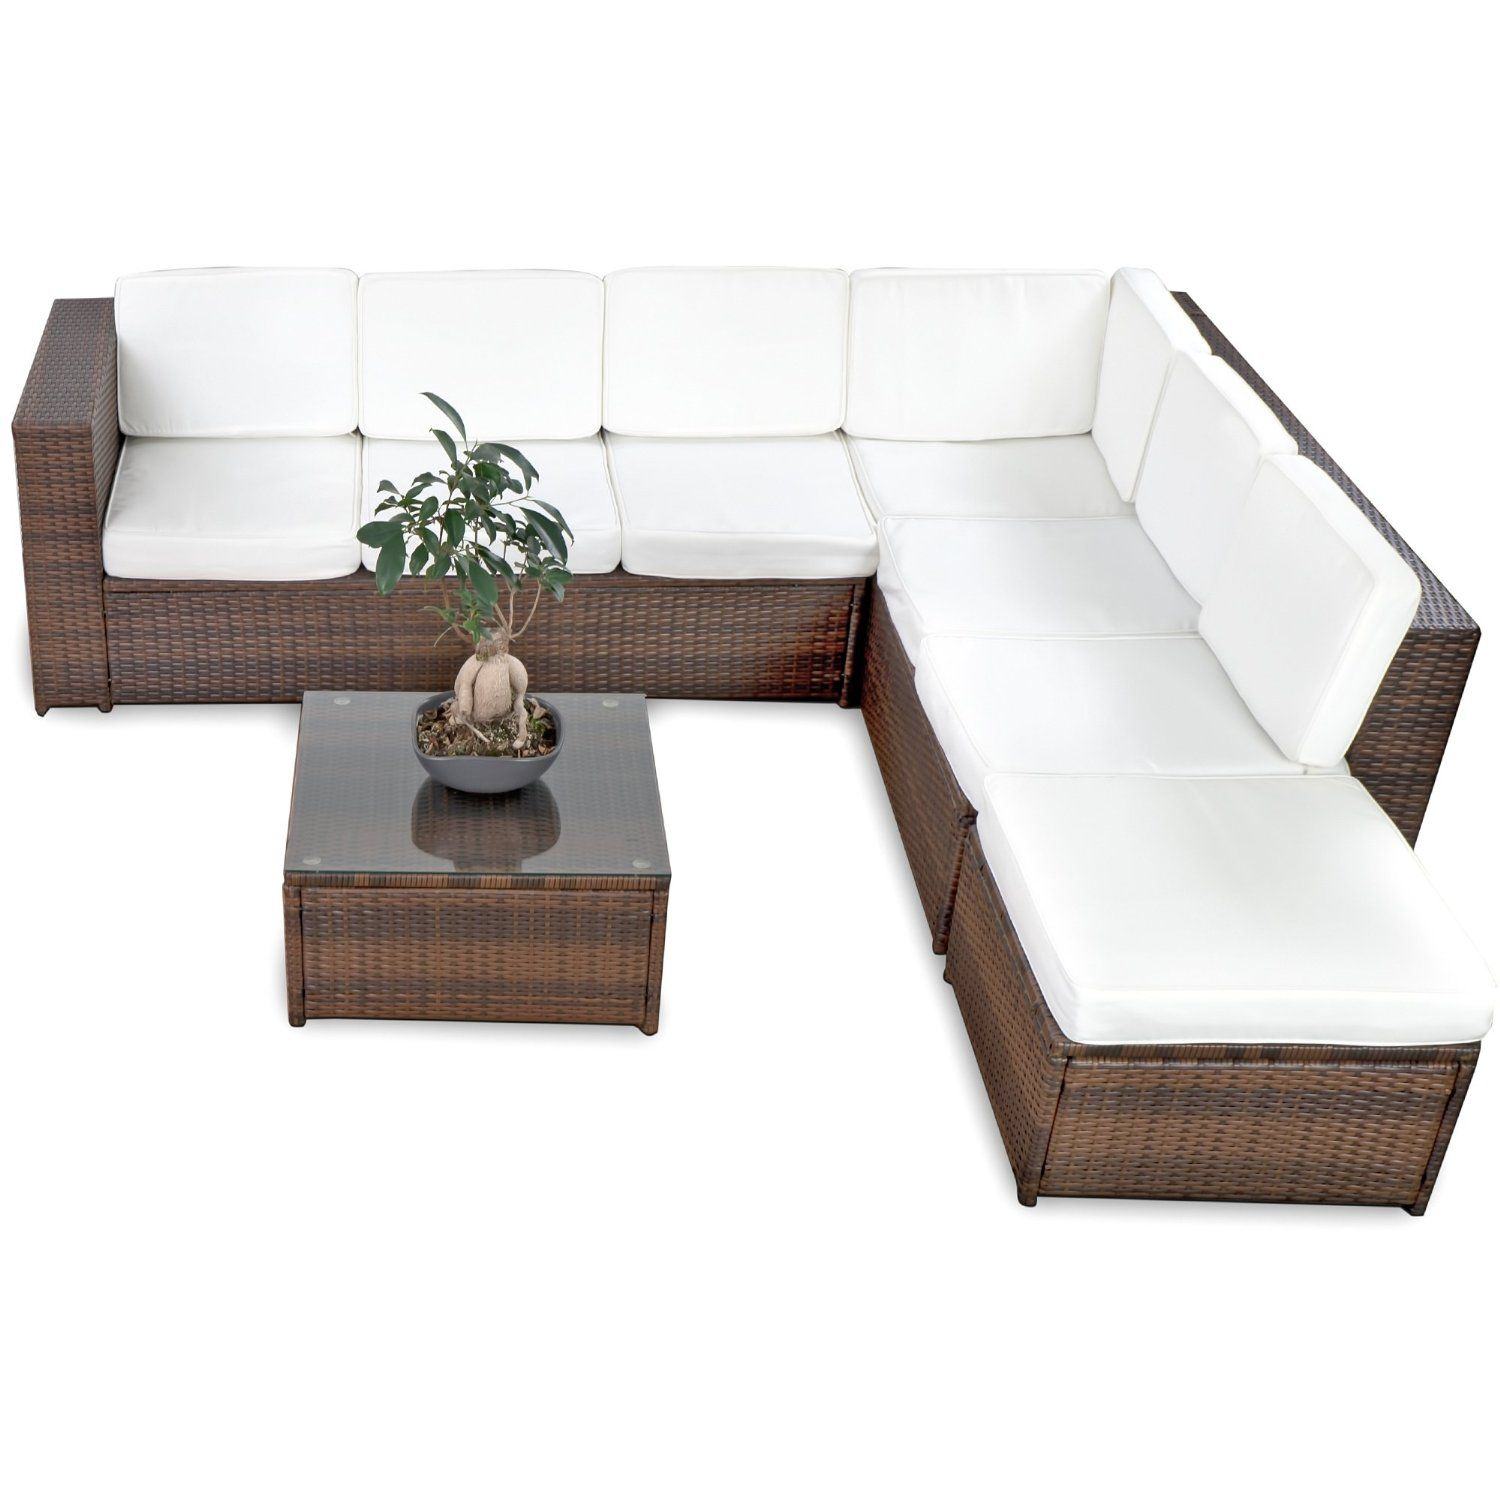 Loungemobel Rattan Amazon Beige Optik Amazon De Xinro 19tlg Xxxl Polyrattan Gartenmöbel Lounge Sofa